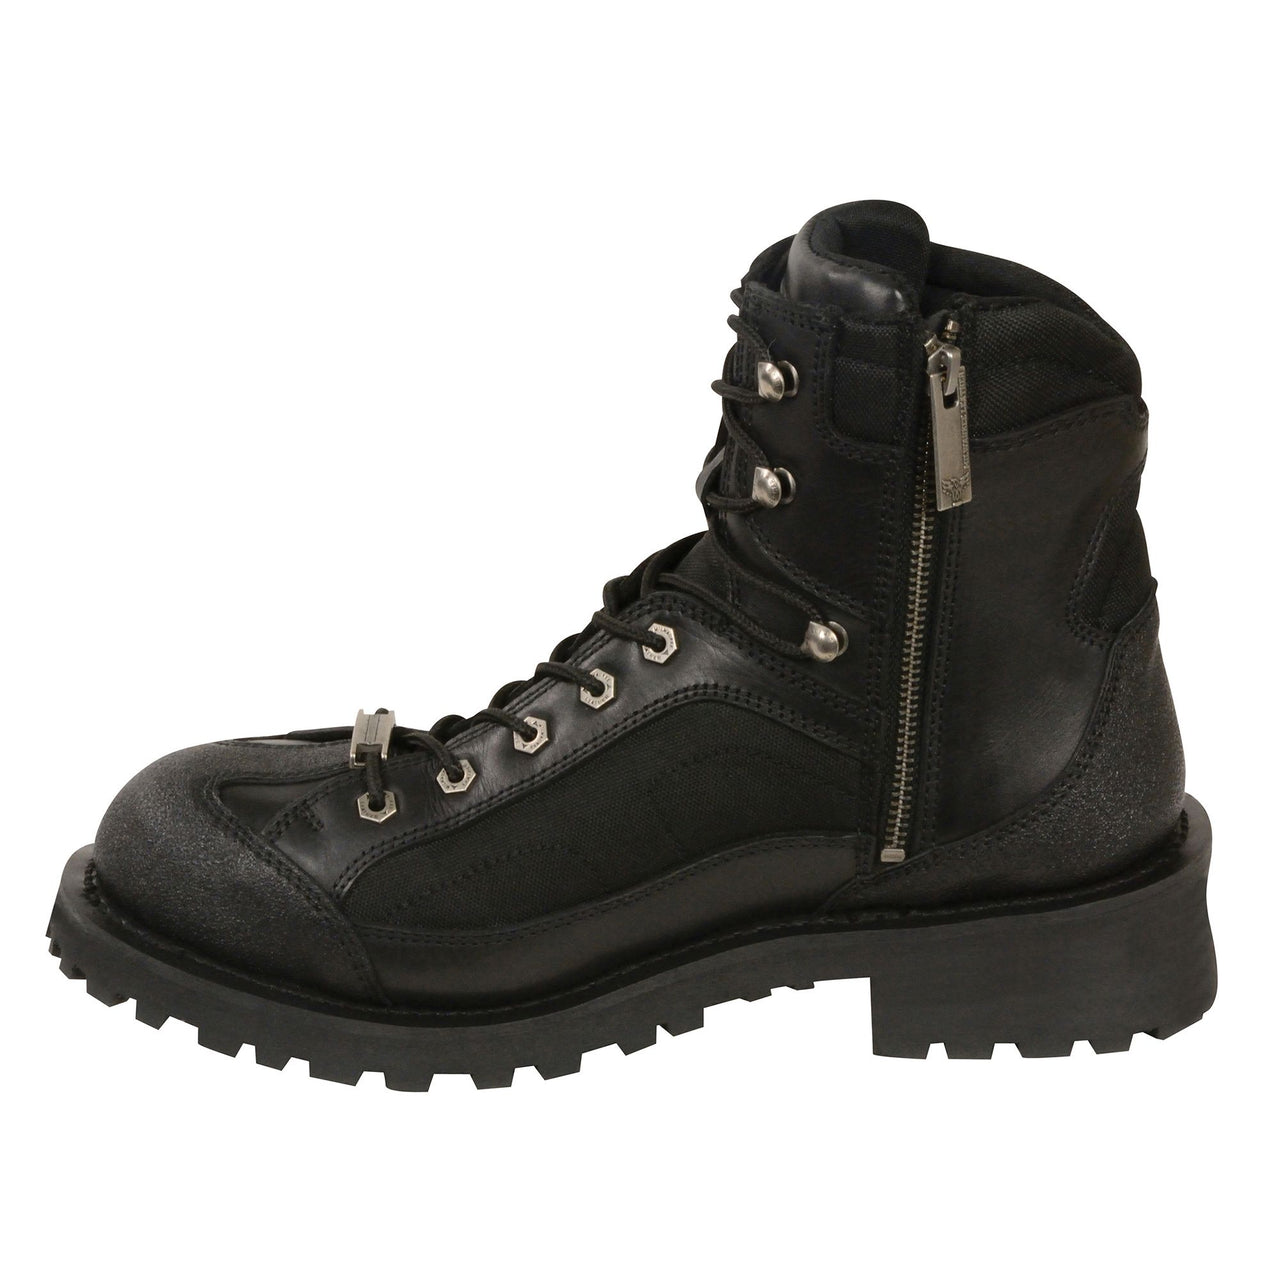 "Men's 6"" Lace to Toe Boot w/ Gear Shift Protection - HighwayLeather"